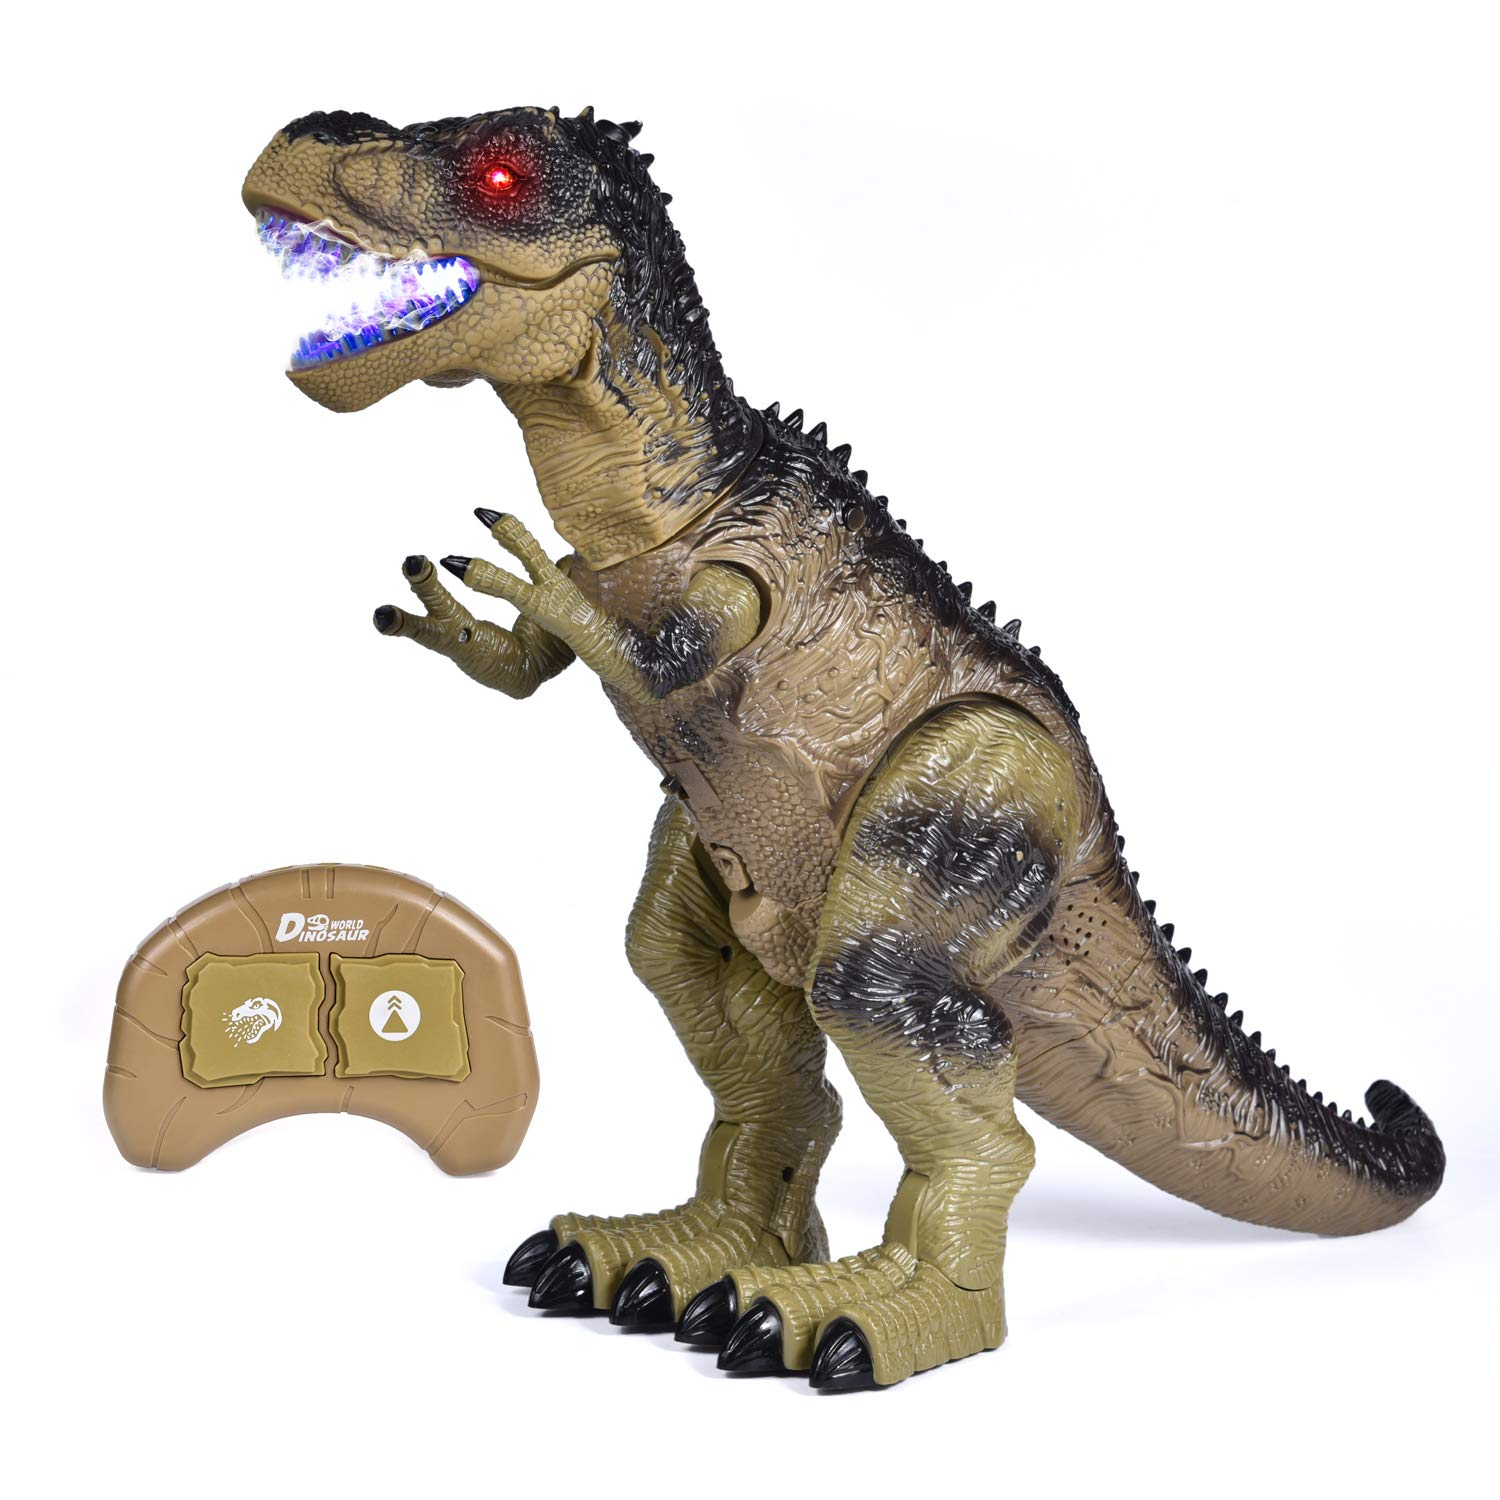 Remote Control Dinosaur Toys for Boys 18.5 L 13.3 H Large Size Walking Lights Roaring and Spraying RC T Rex Birthday Gift for 3 Year Old Boys